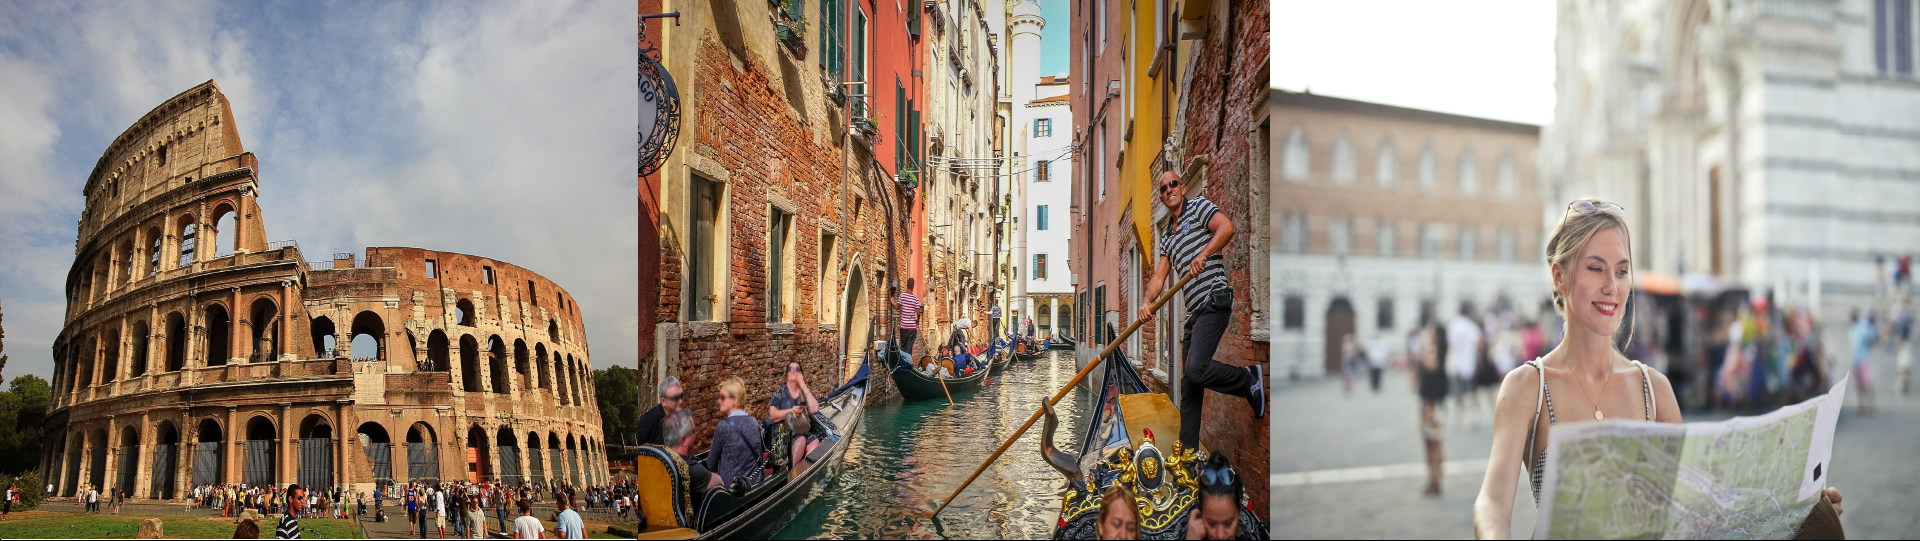 Images of tourism in Italy